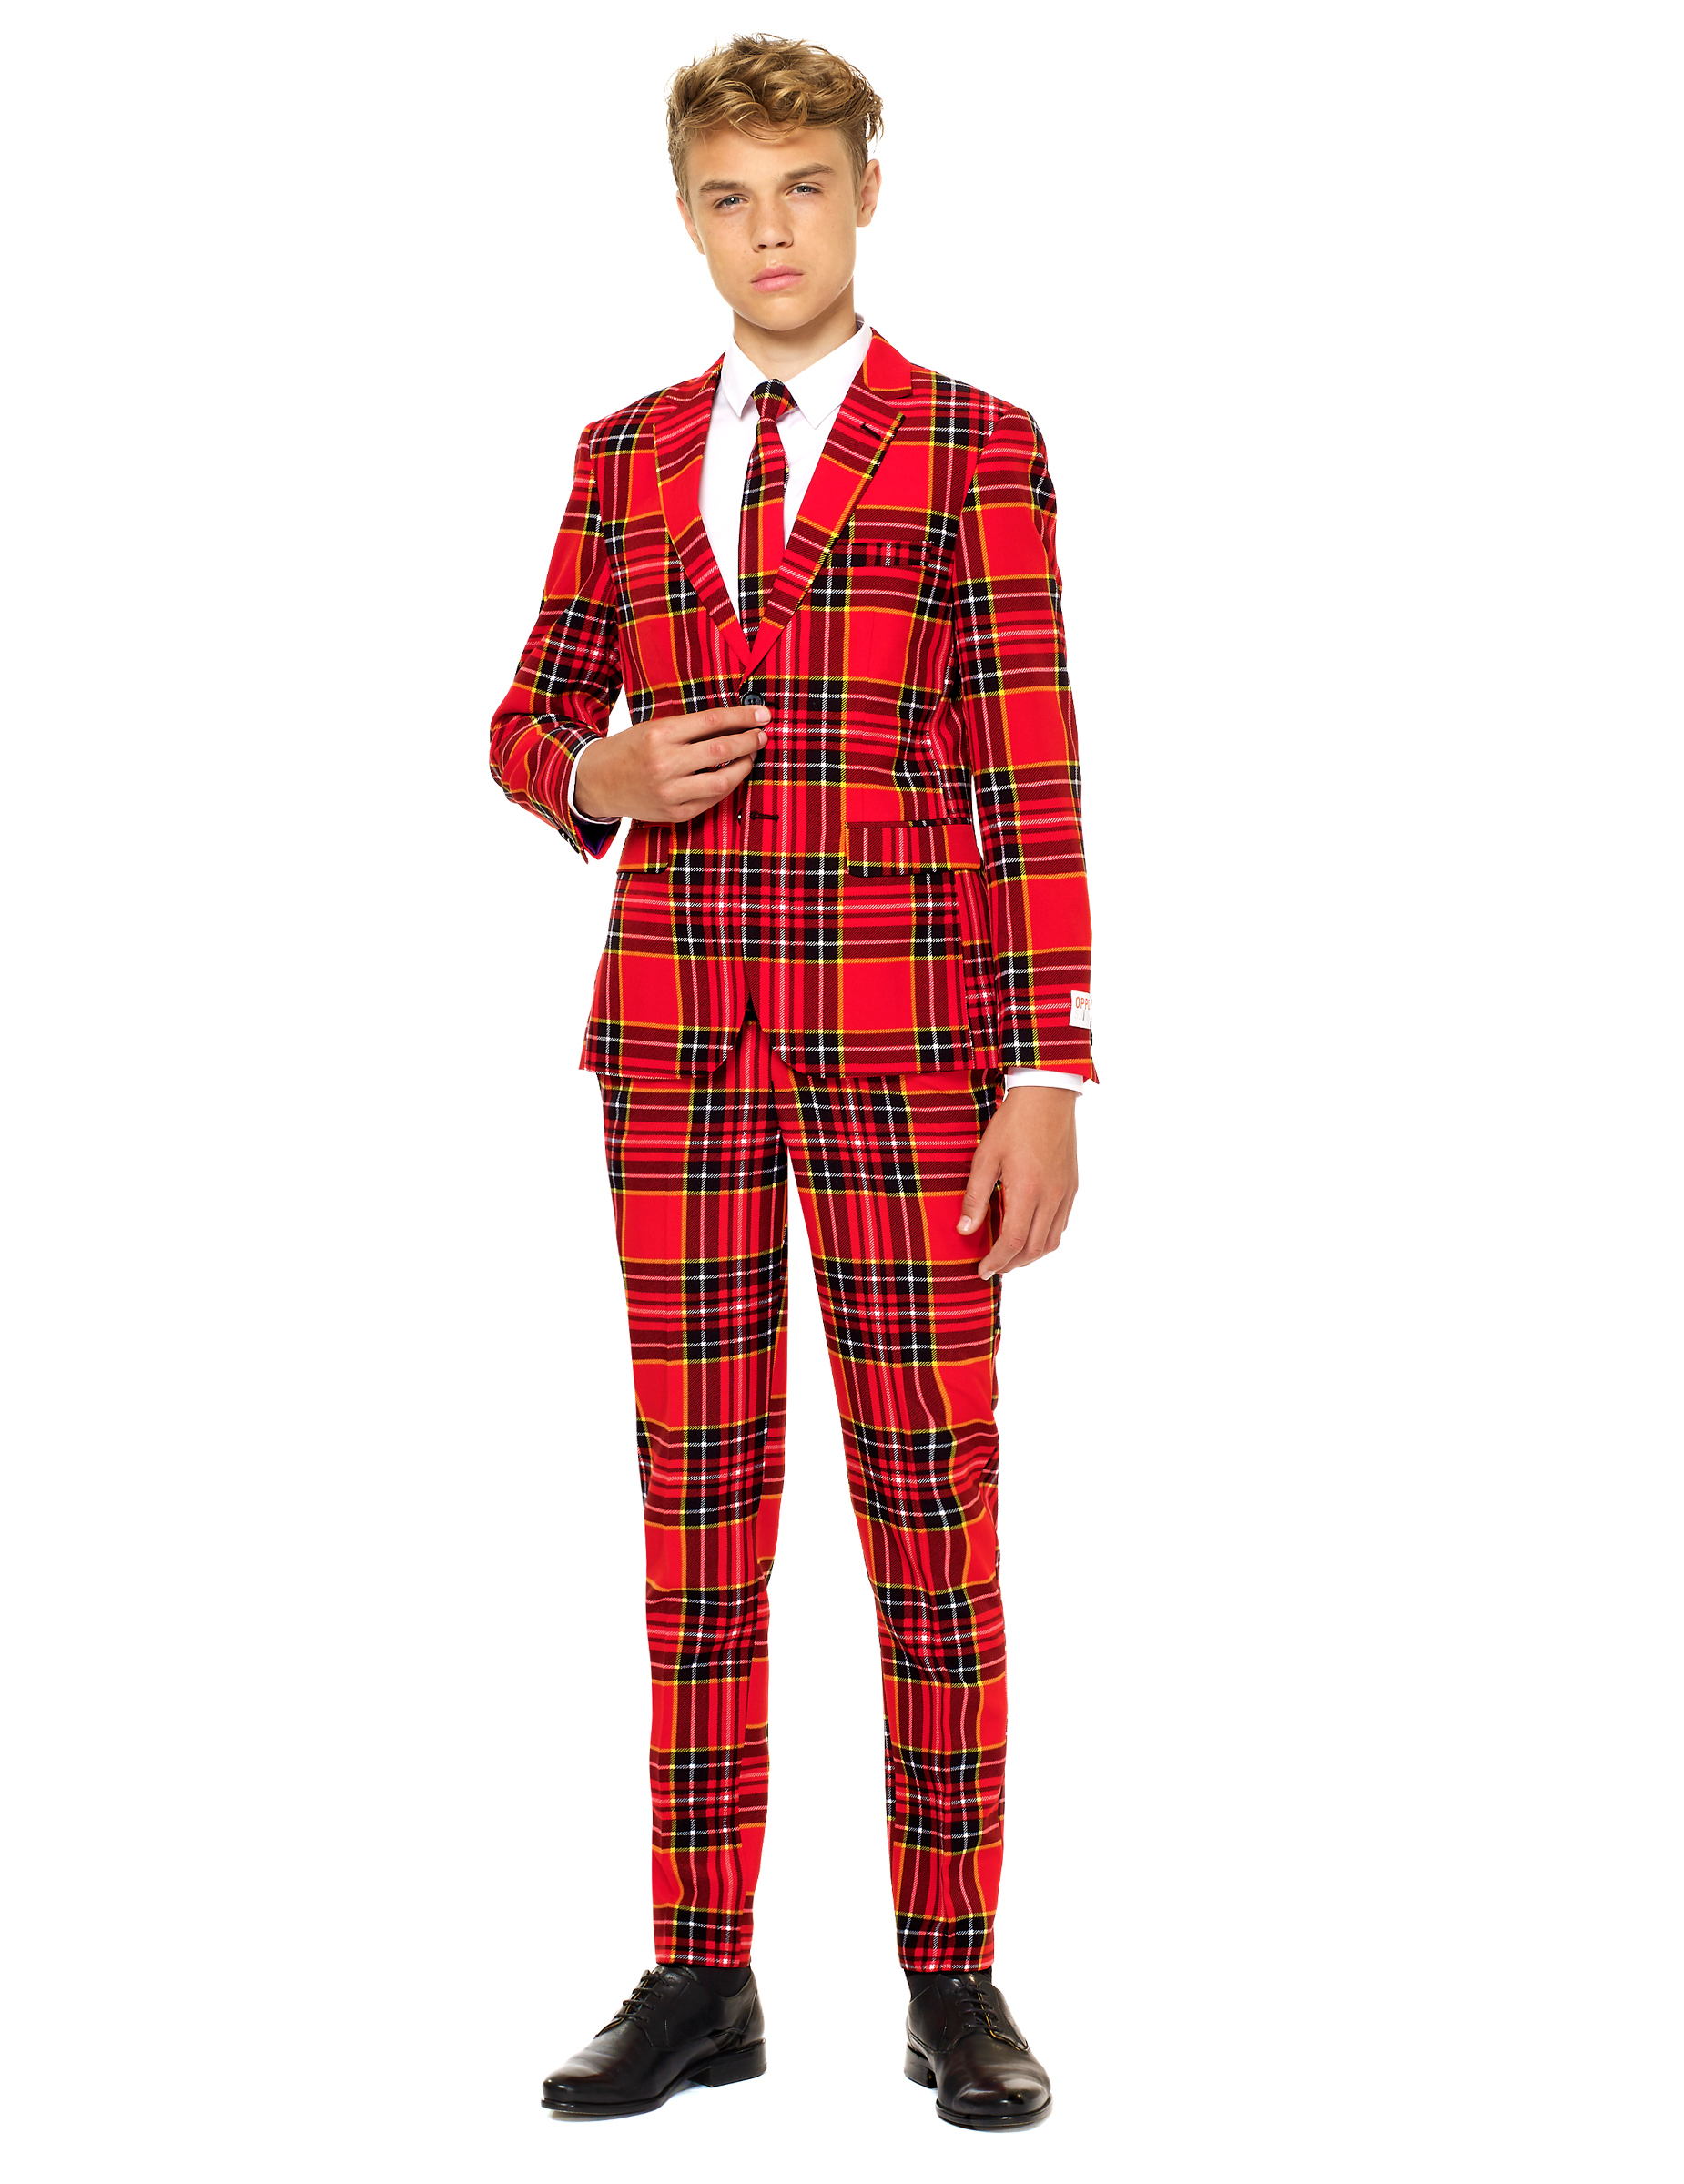 opposuits kost m f r teenager rot g nstige faschings. Black Bedroom Furniture Sets. Home Design Ideas